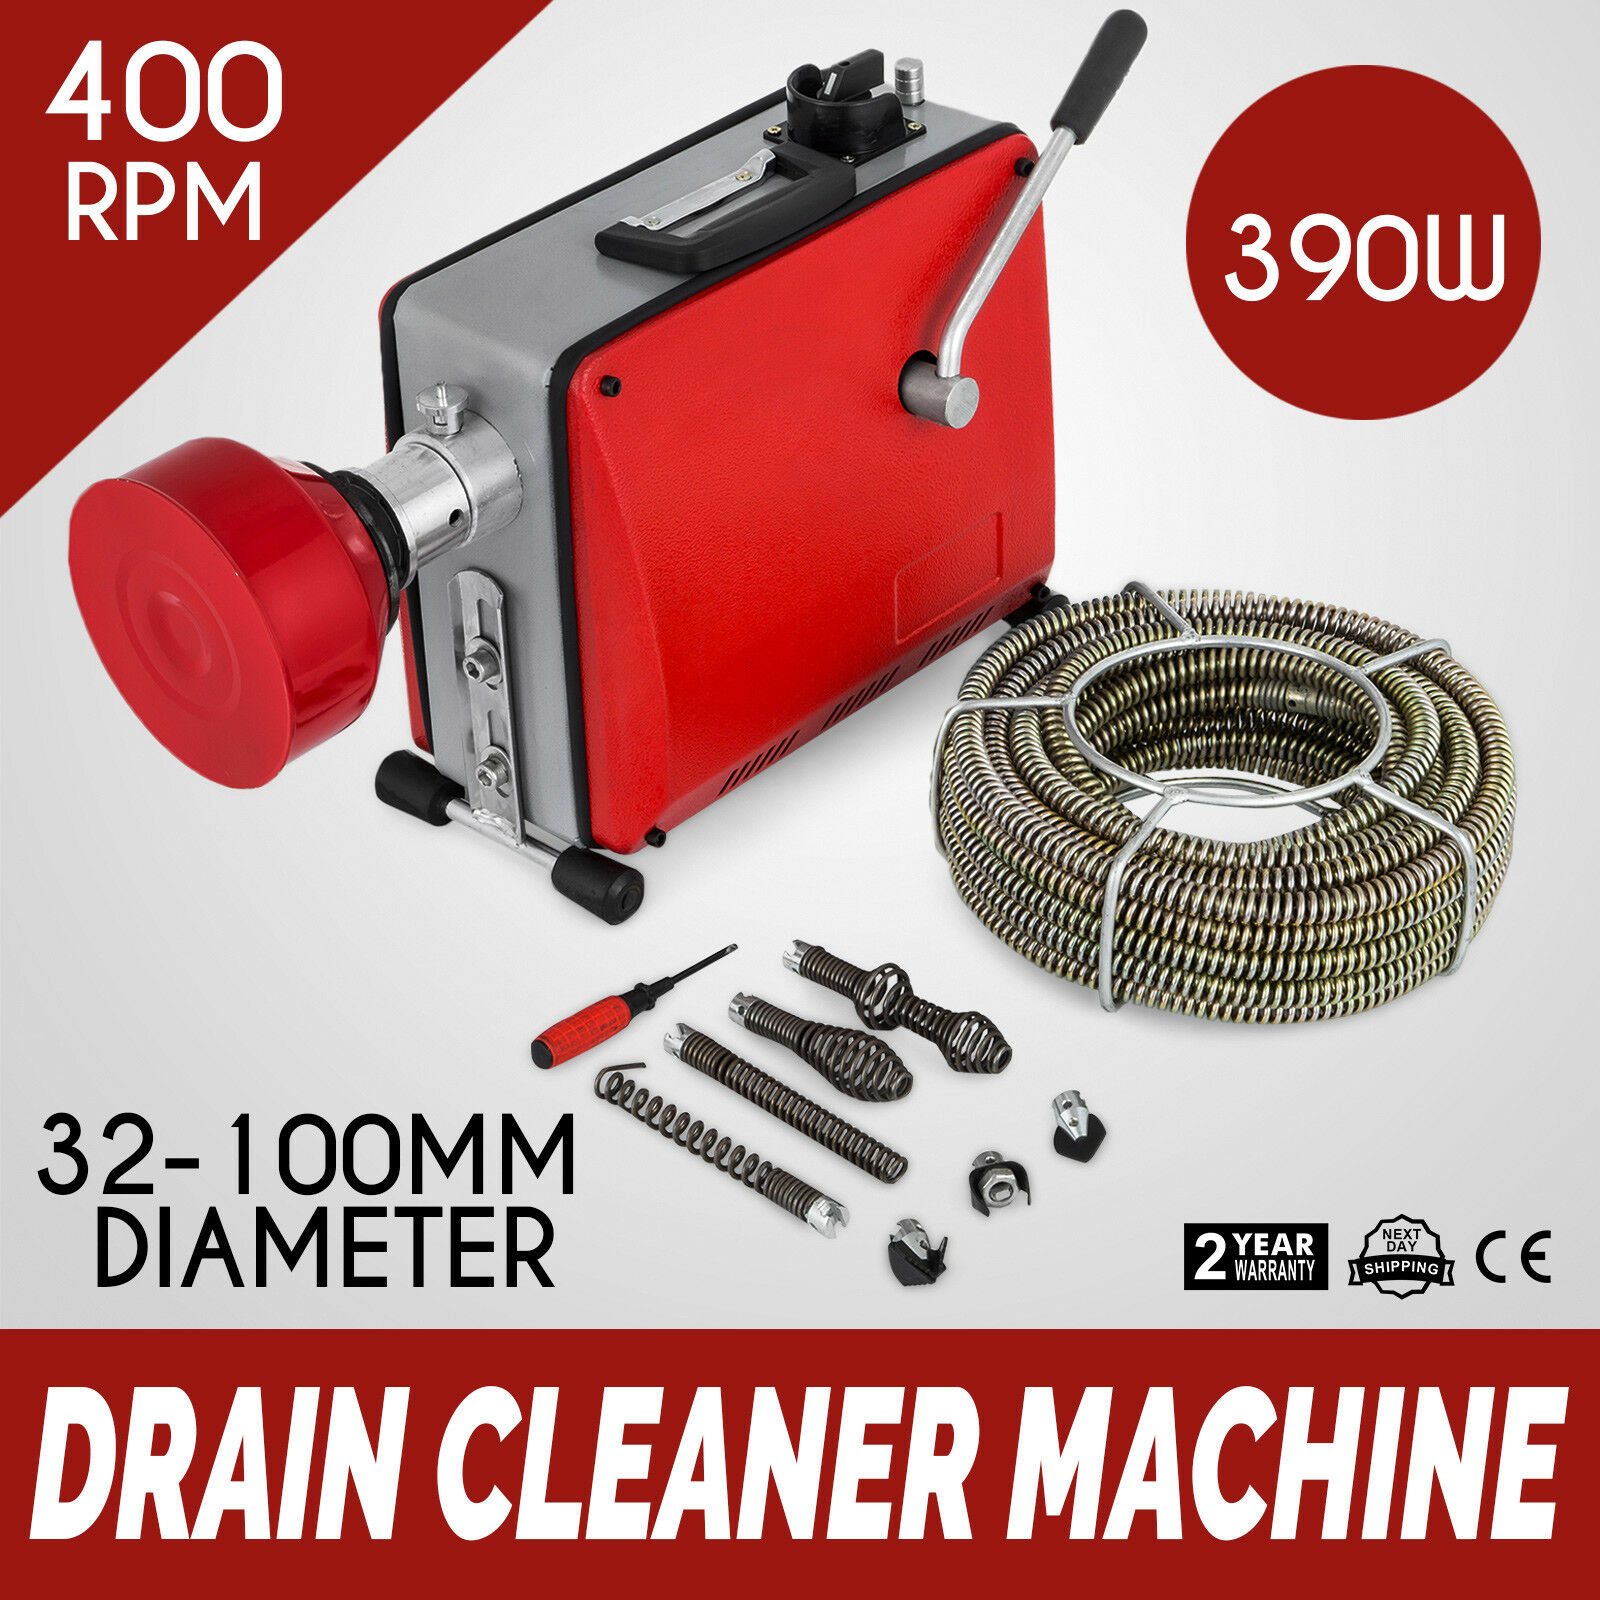 32-100mm Pipe Cleaning Machine 390W Pipe Cleaner Sewage Electric Plumbing